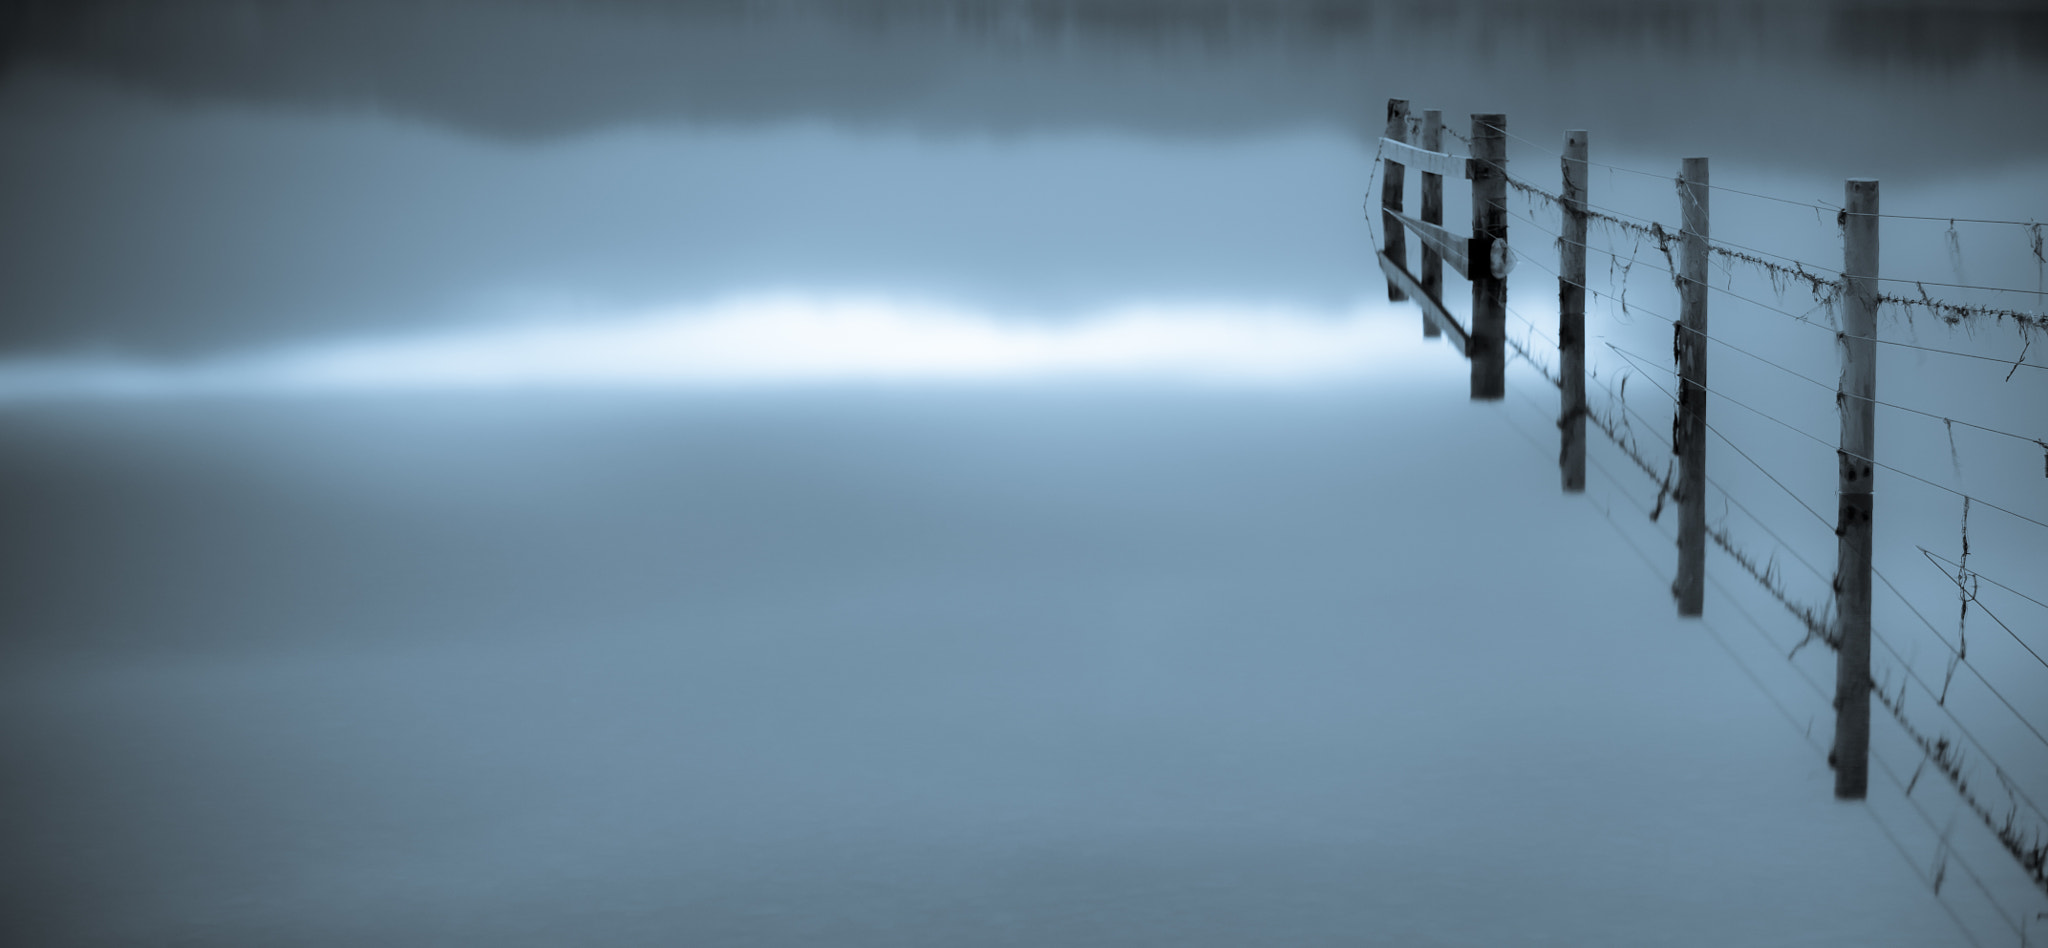 Photograph Fence by Mark Littlejohn on 500px